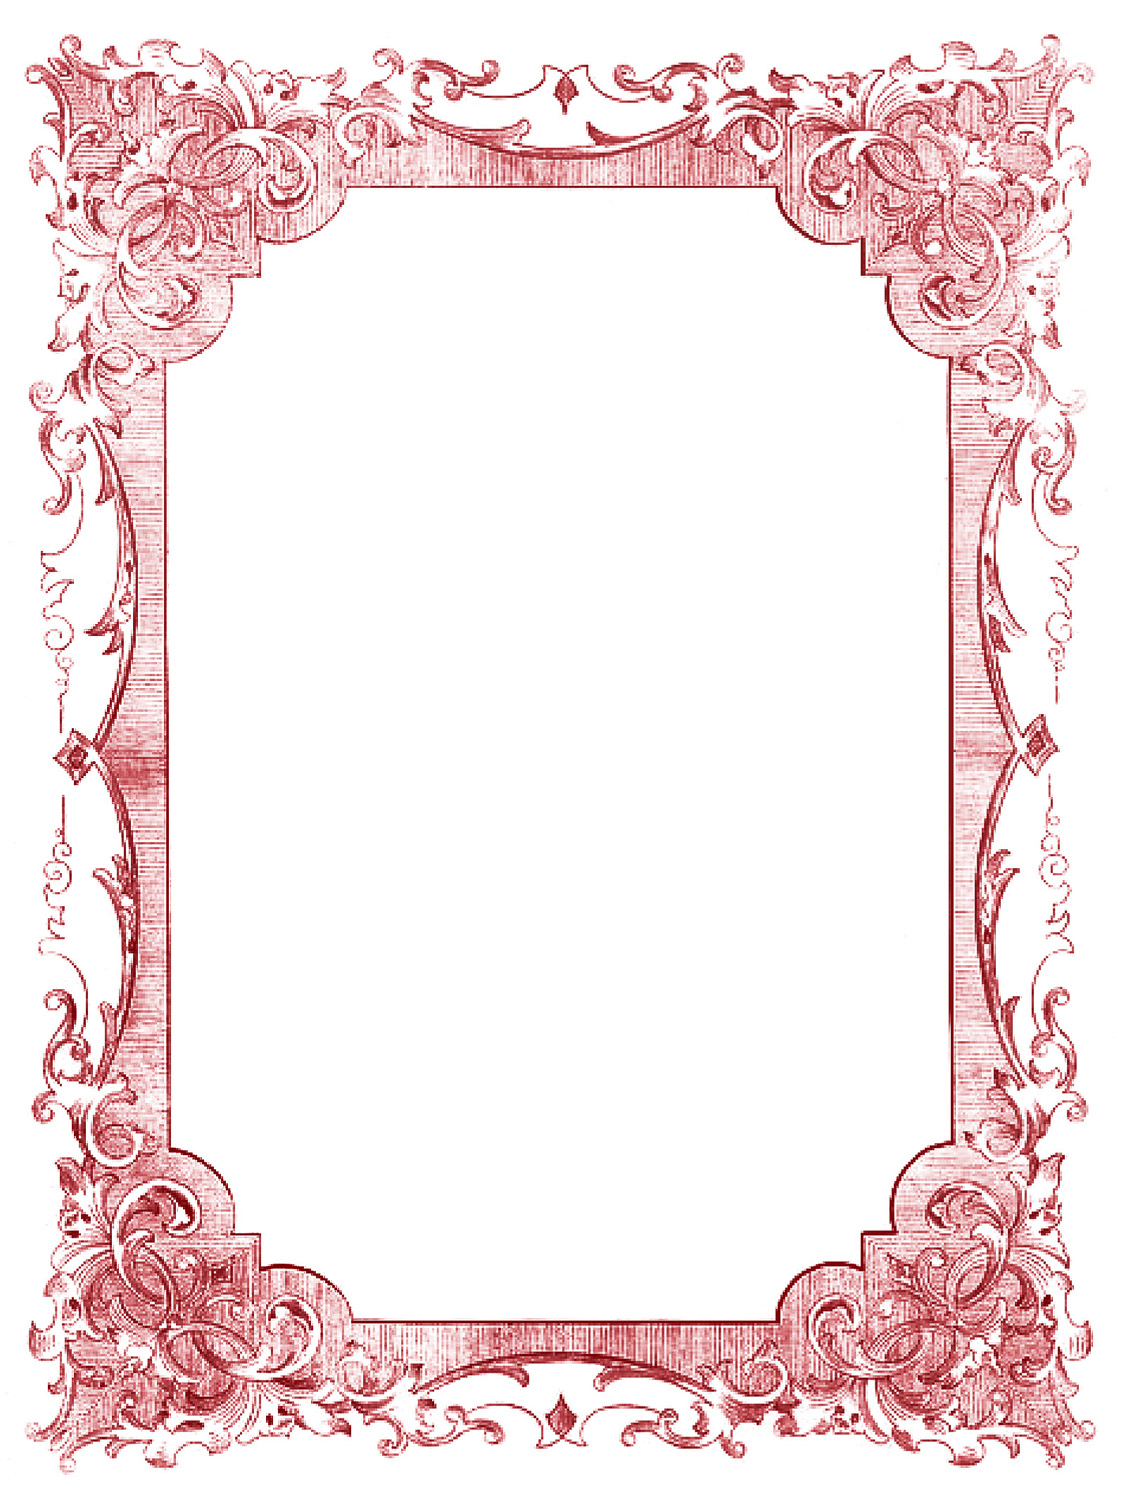 vintage clip art romantic frames christmas colors the graphics fairy. Black Bedroom Furniture Sets. Home Design Ideas